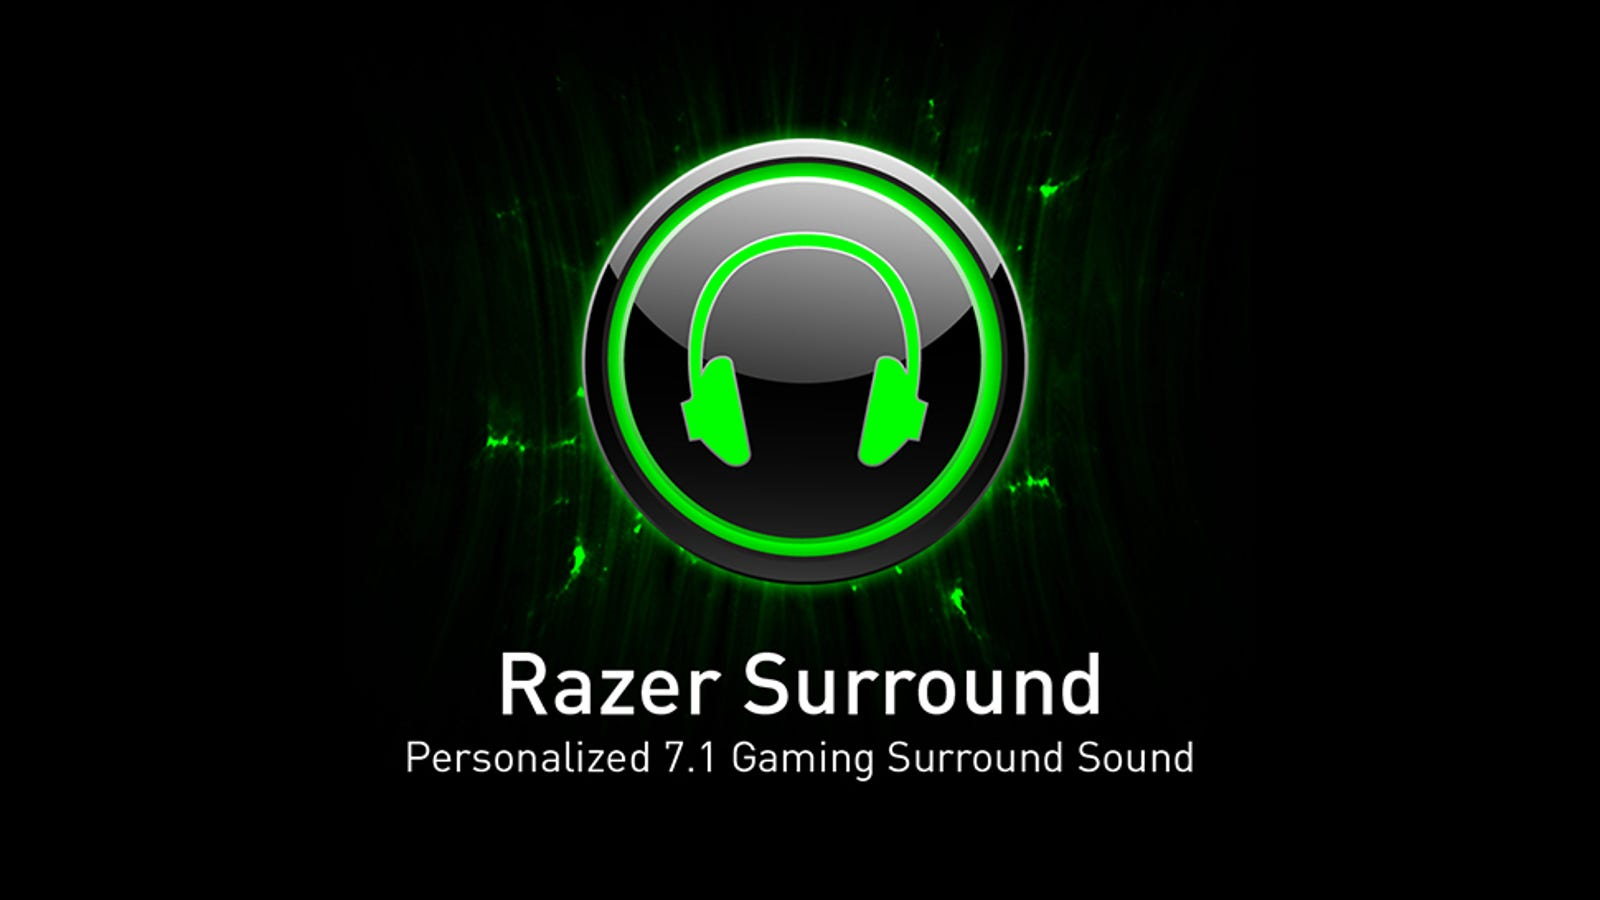 earbud pack of 10 - Razer's Surround Software Could Turn Regular Headphones Into 7.1 Cans